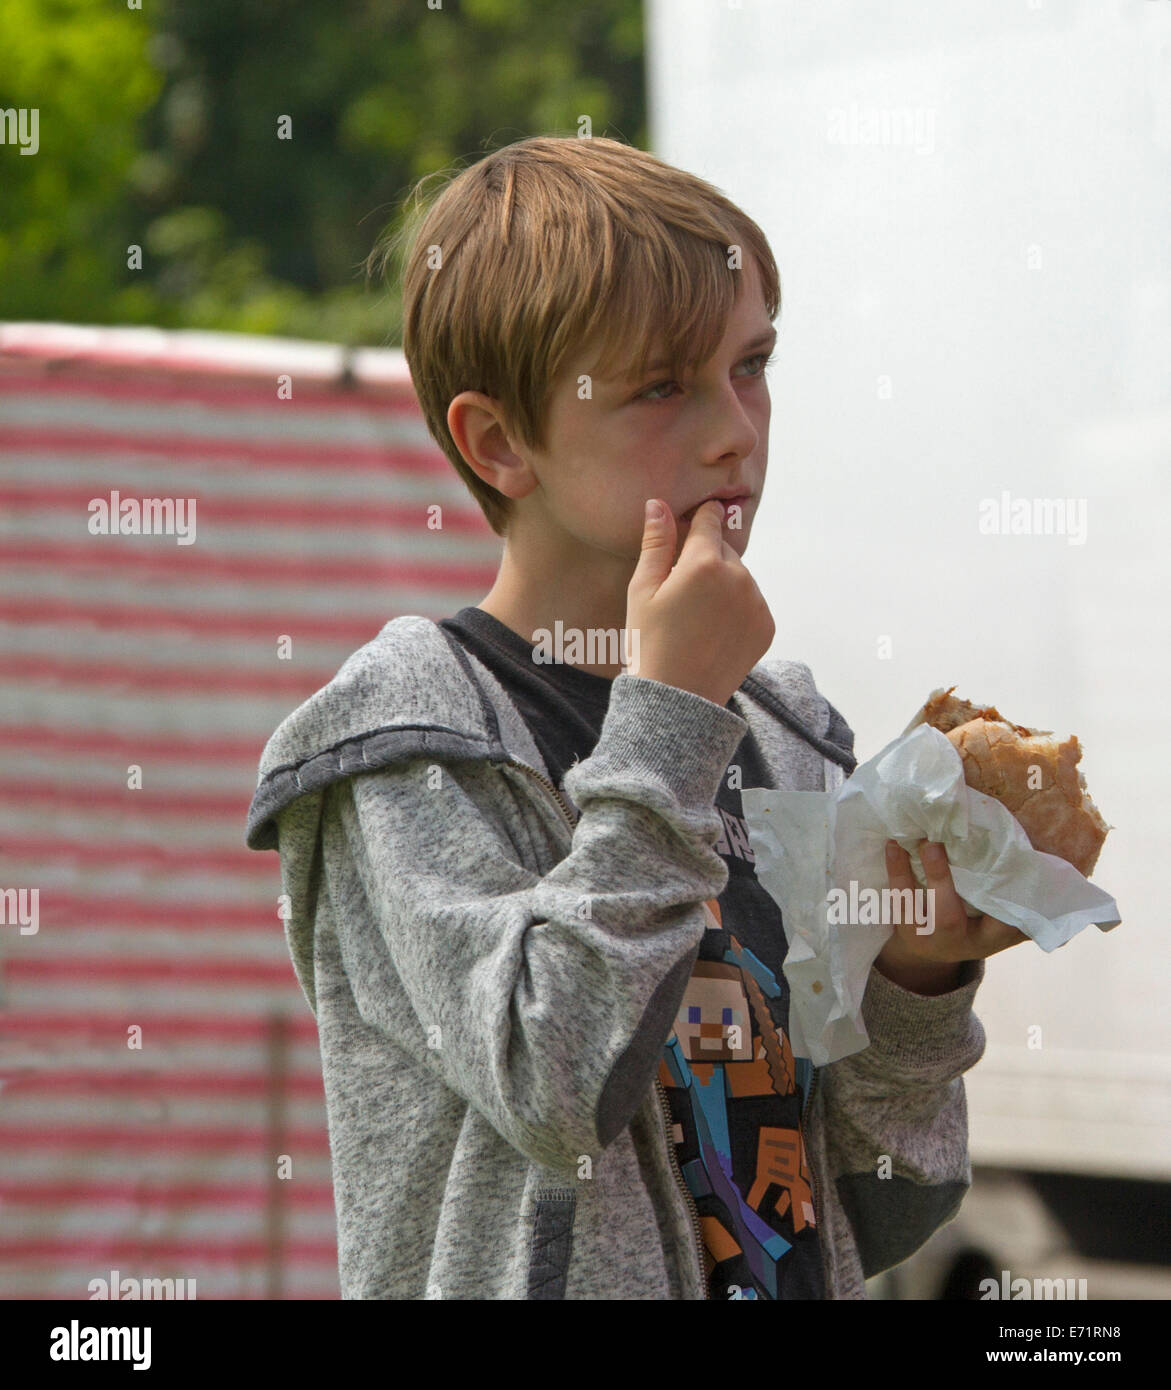 Young boy wearing casual clothes eating hamburger wrapped in paper and licking fingers - Stock Image